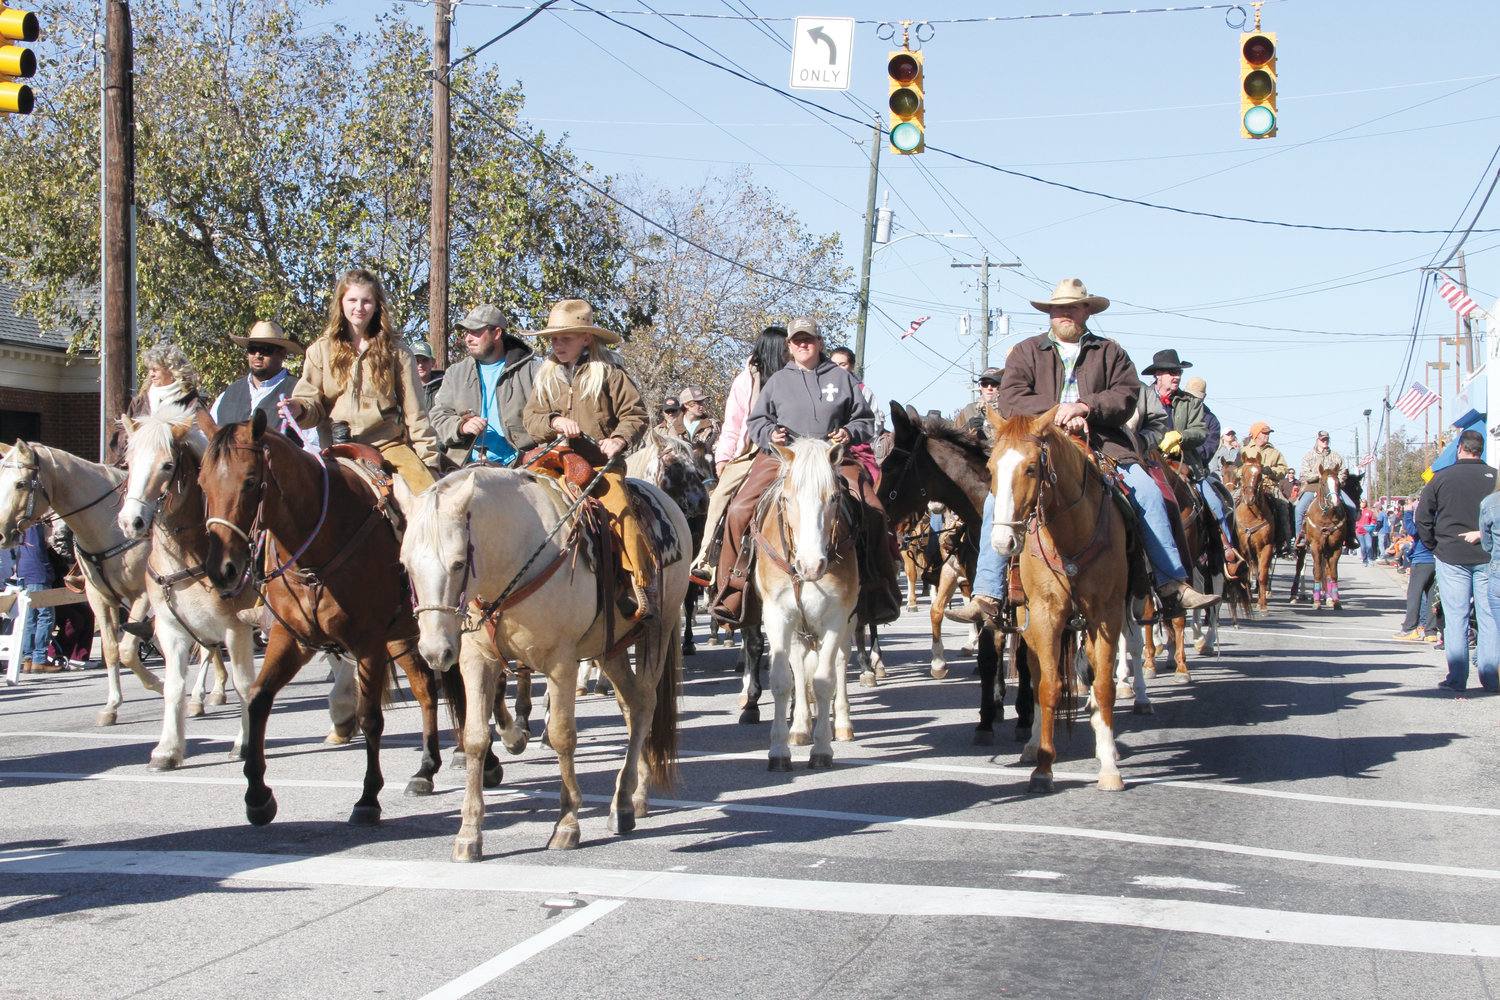 Horses parade through Coats as part of Farmers Day festivities in a previous year. The parade will once again be held Saturday at 1 p.m.